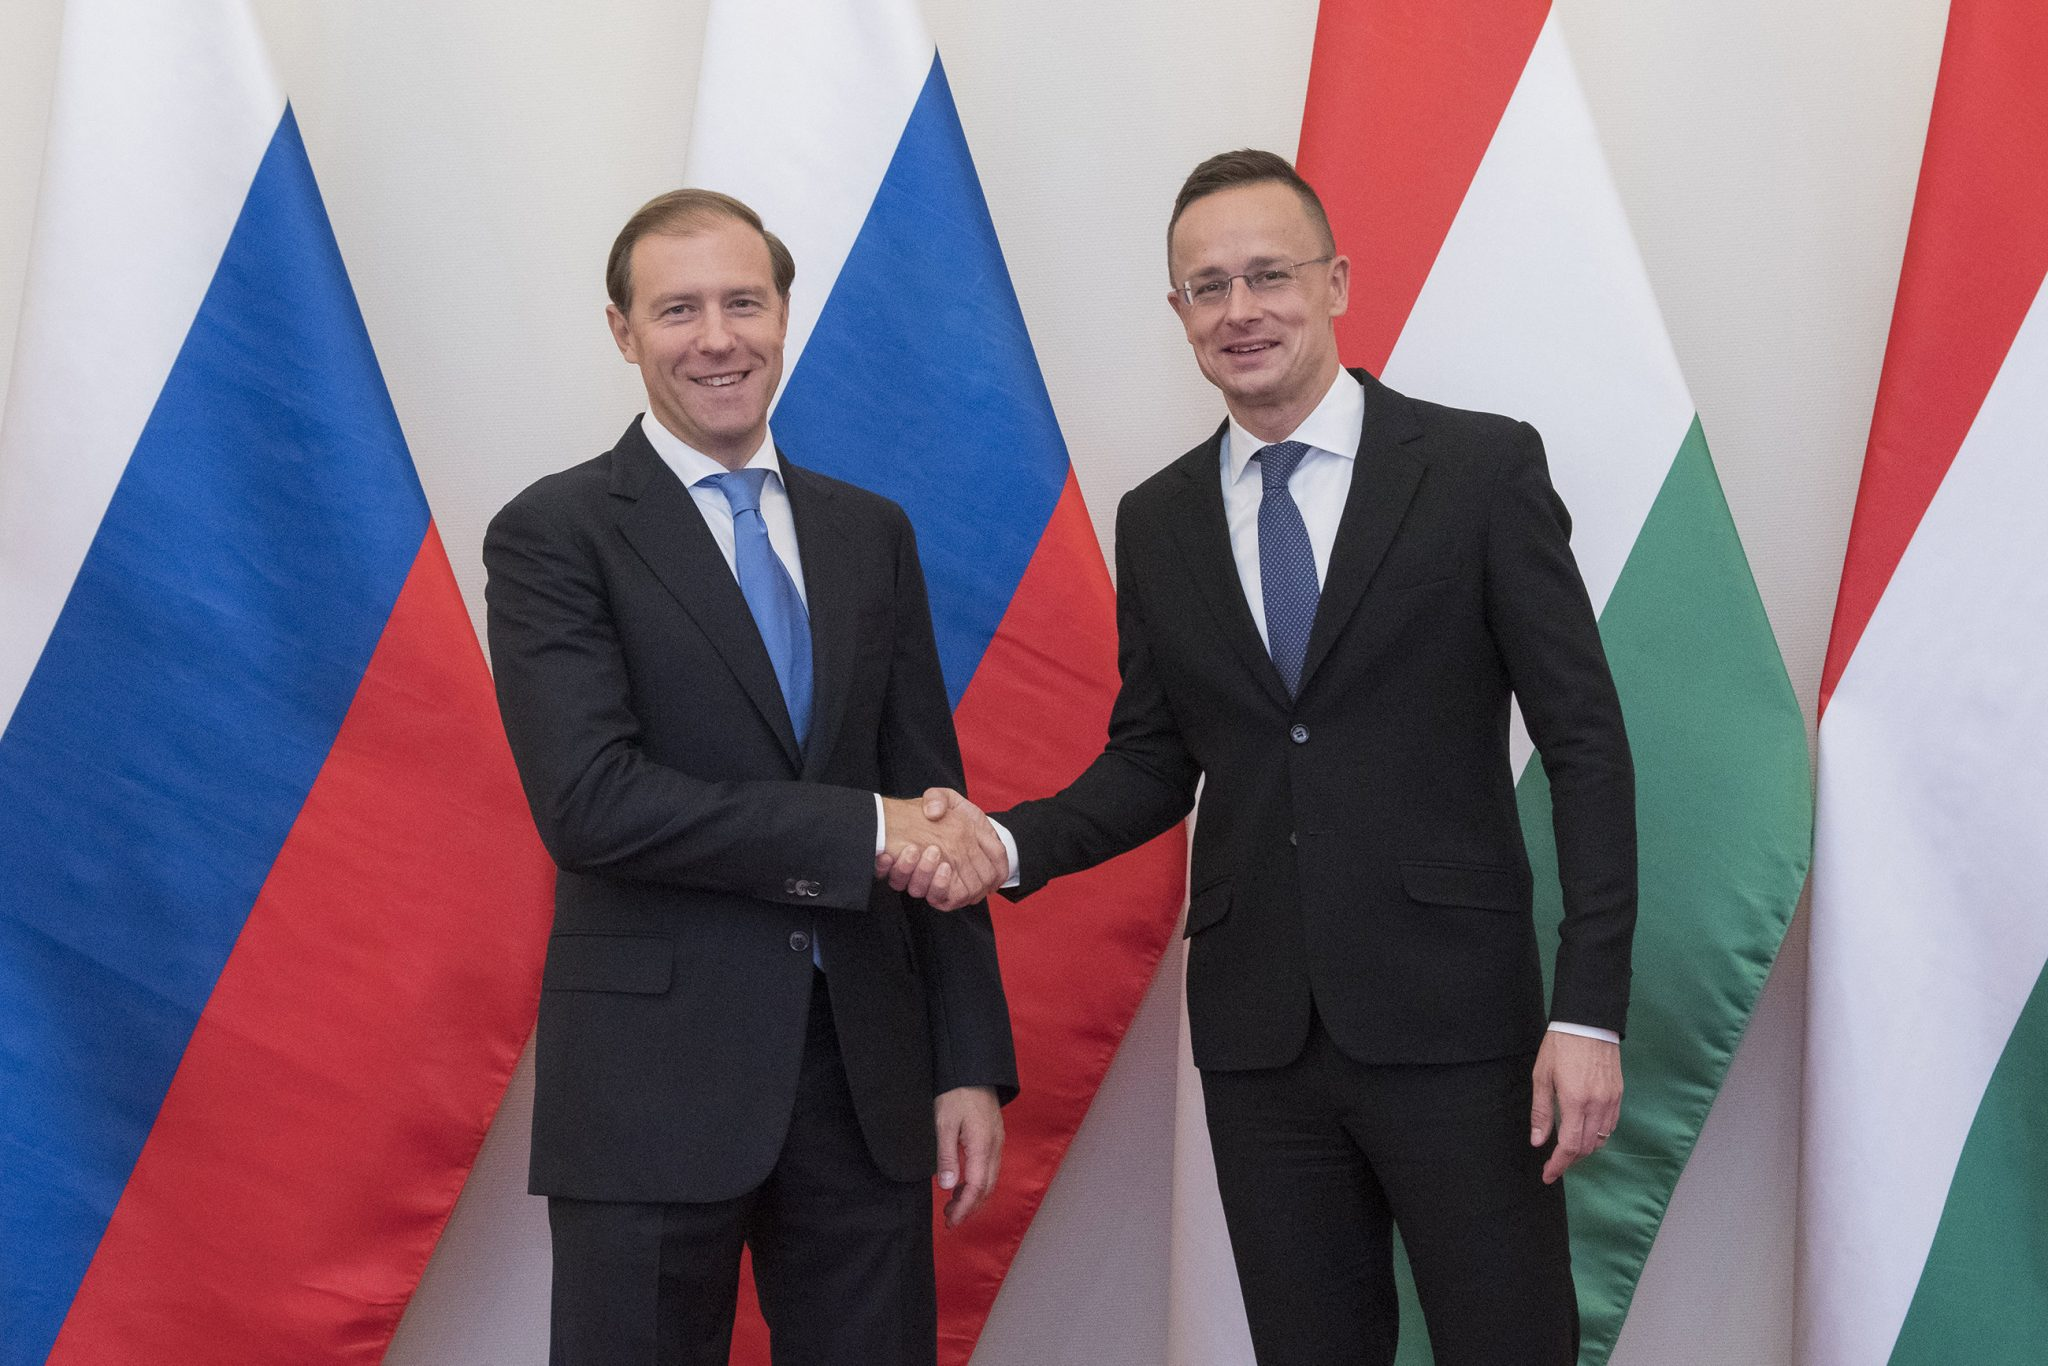 Minister of Foreign Affairs Meets Russian Industry Minister in Budapest post's picture